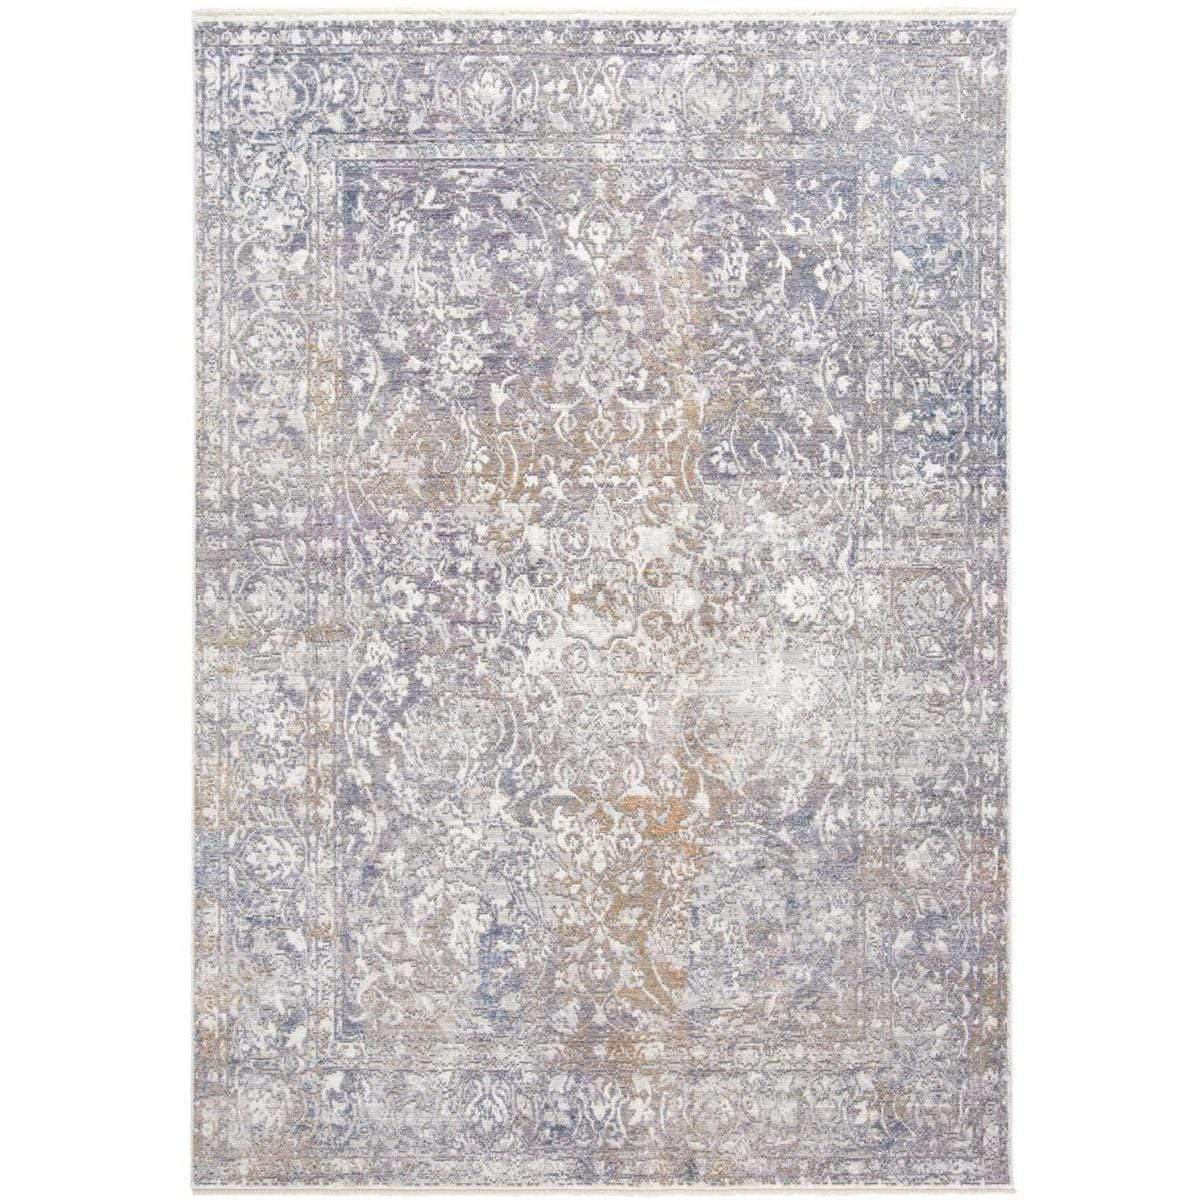 Feizy Home Cecily Rug - Multi-Colored - 120